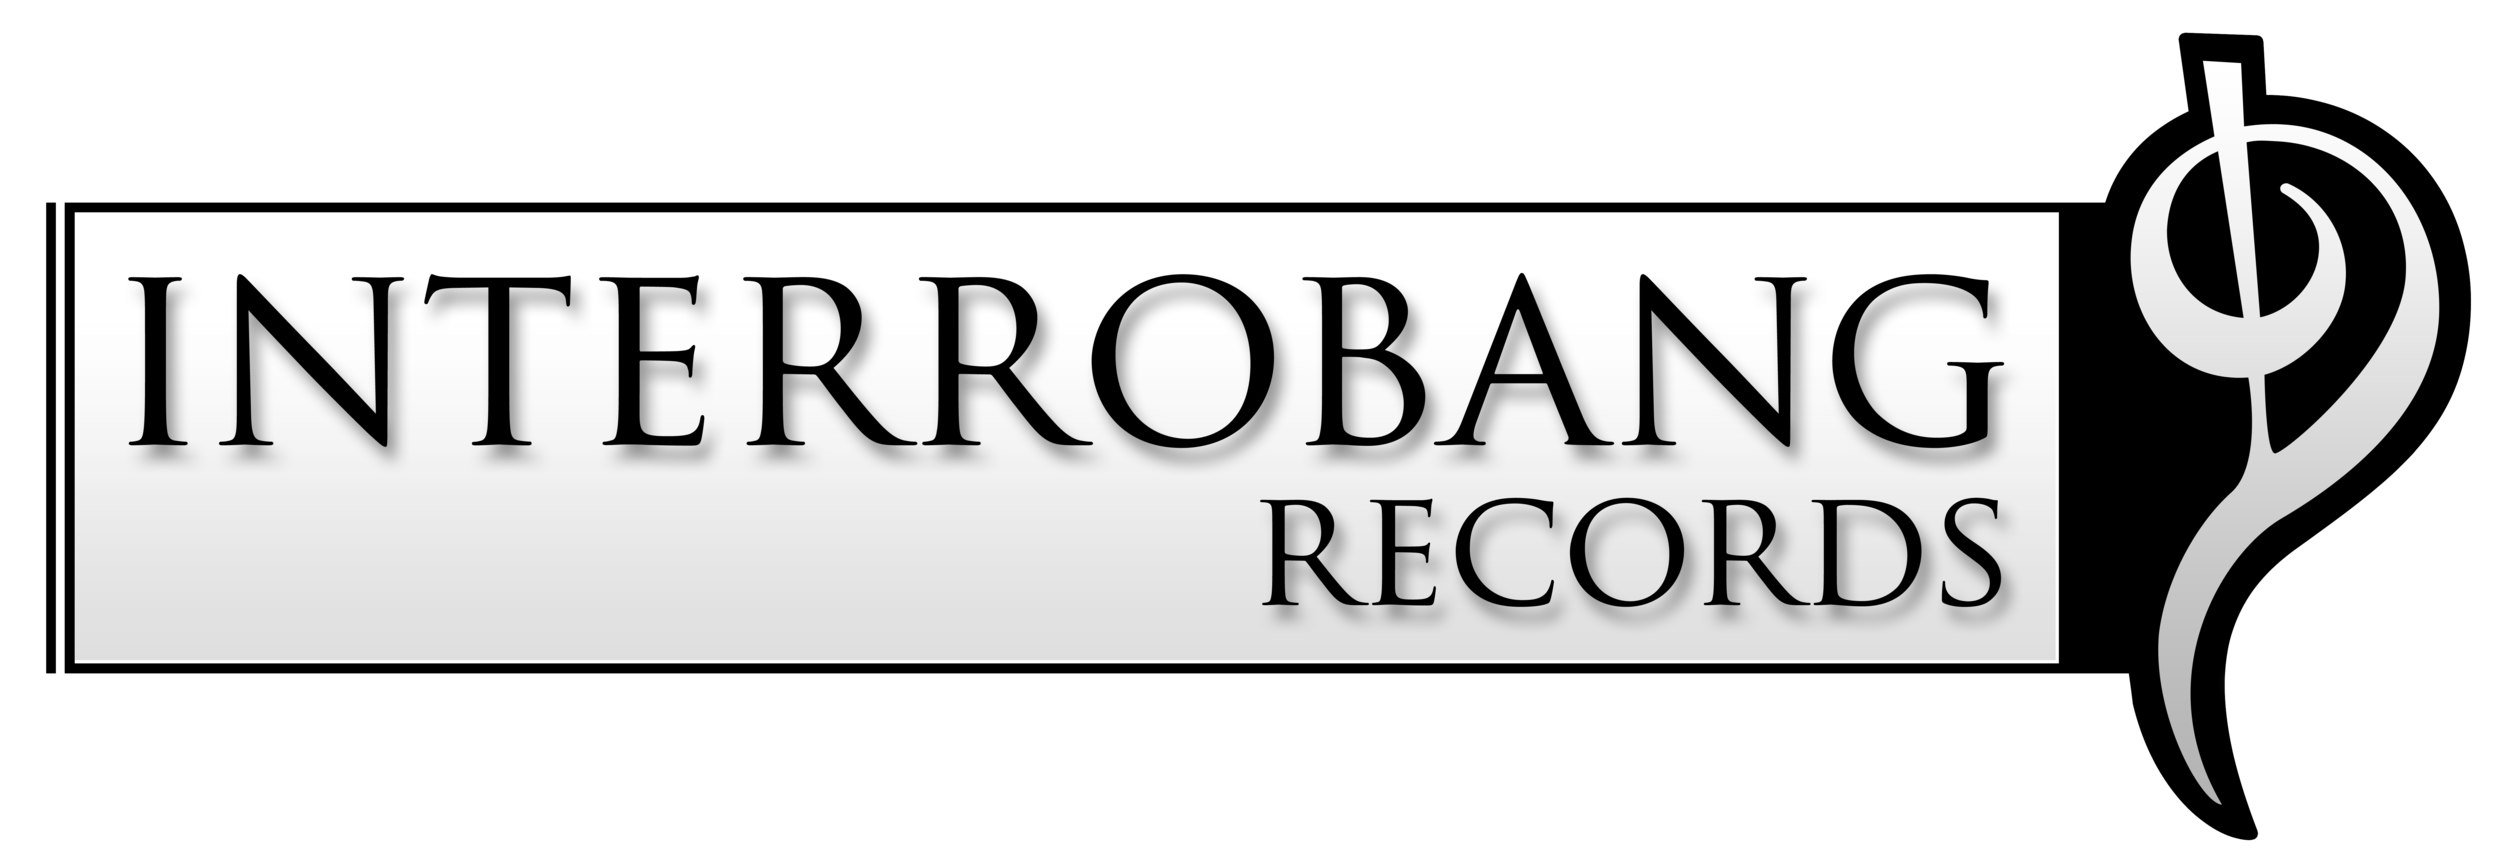 interrobangrecordslogo